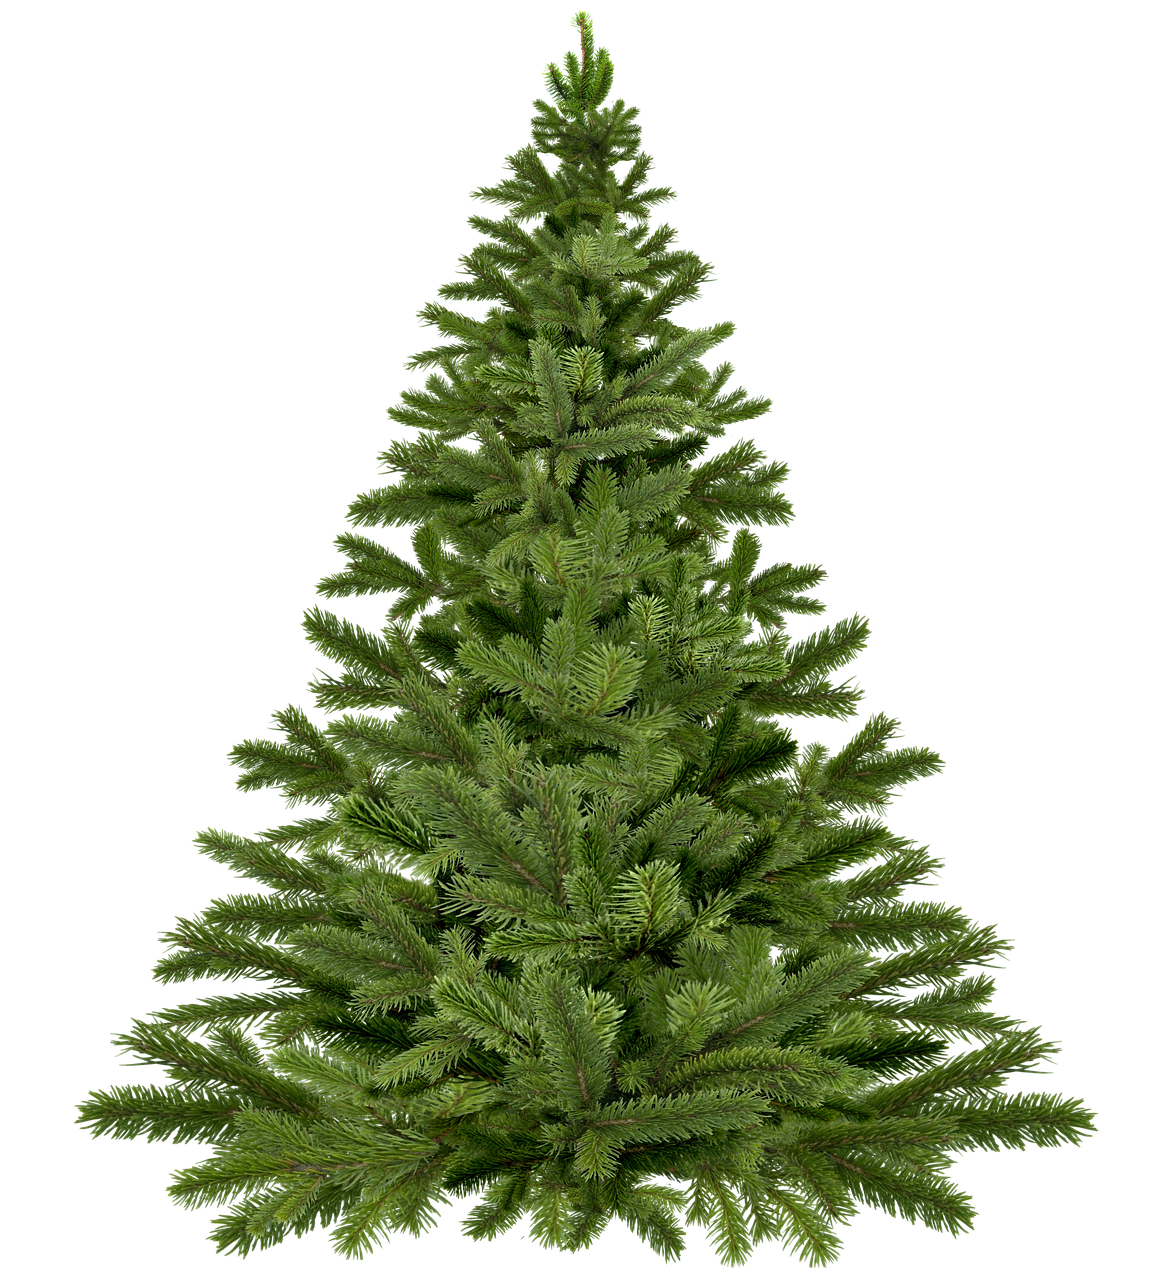 Christmas Tree || Christmas Tree Lights || Christmas Tree Decoration Images||Christmas Tree Artificial || Christmas Tree Artificial Photo Download